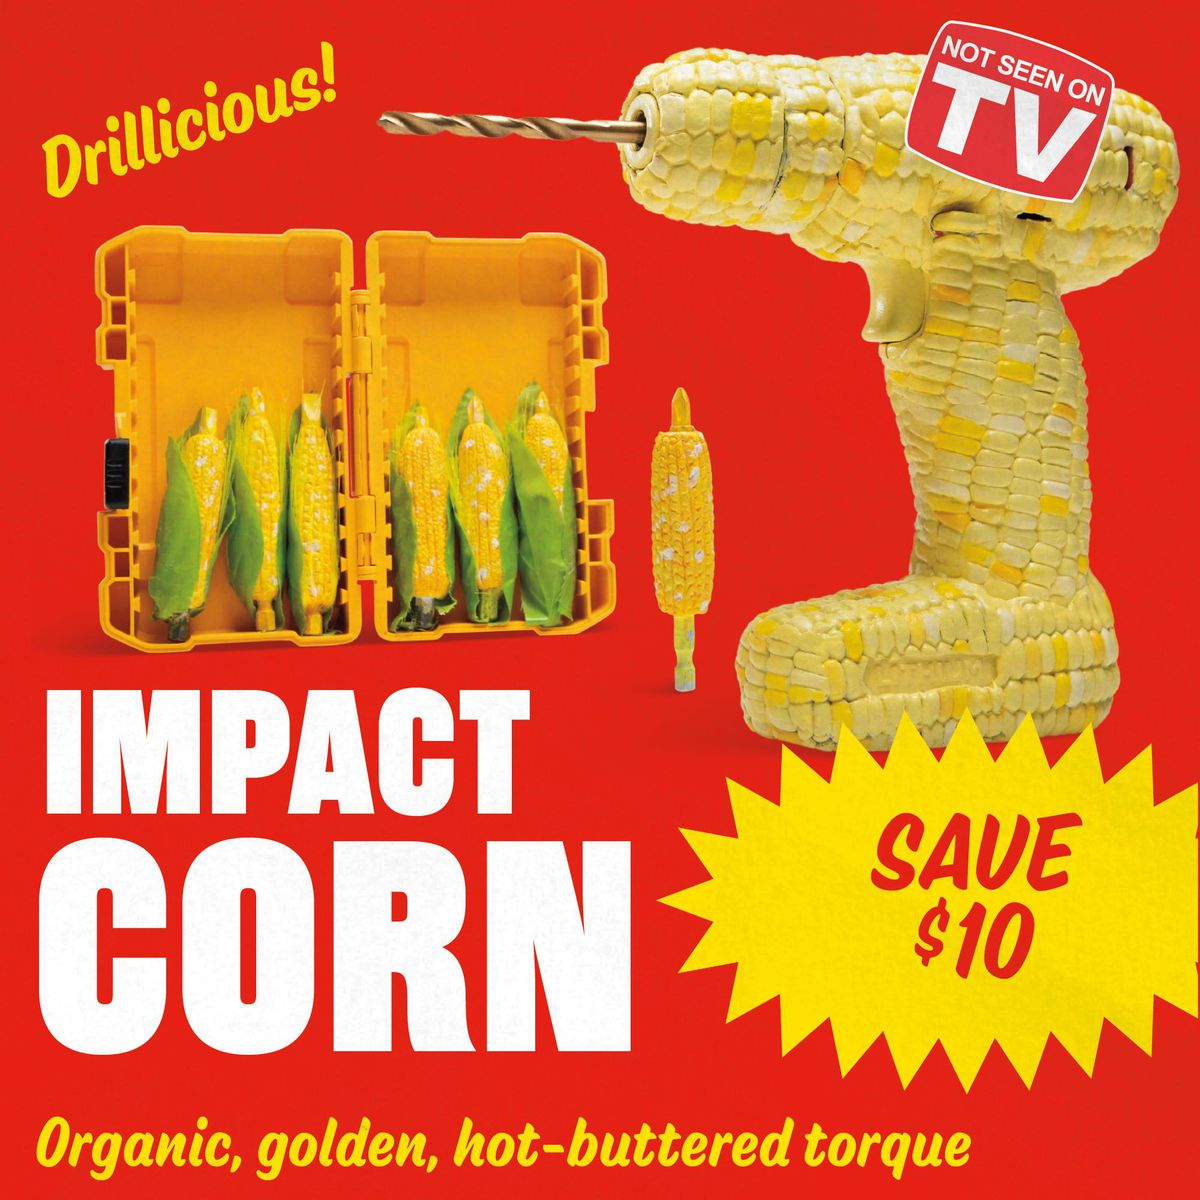 An ad for a product called Impact Corn